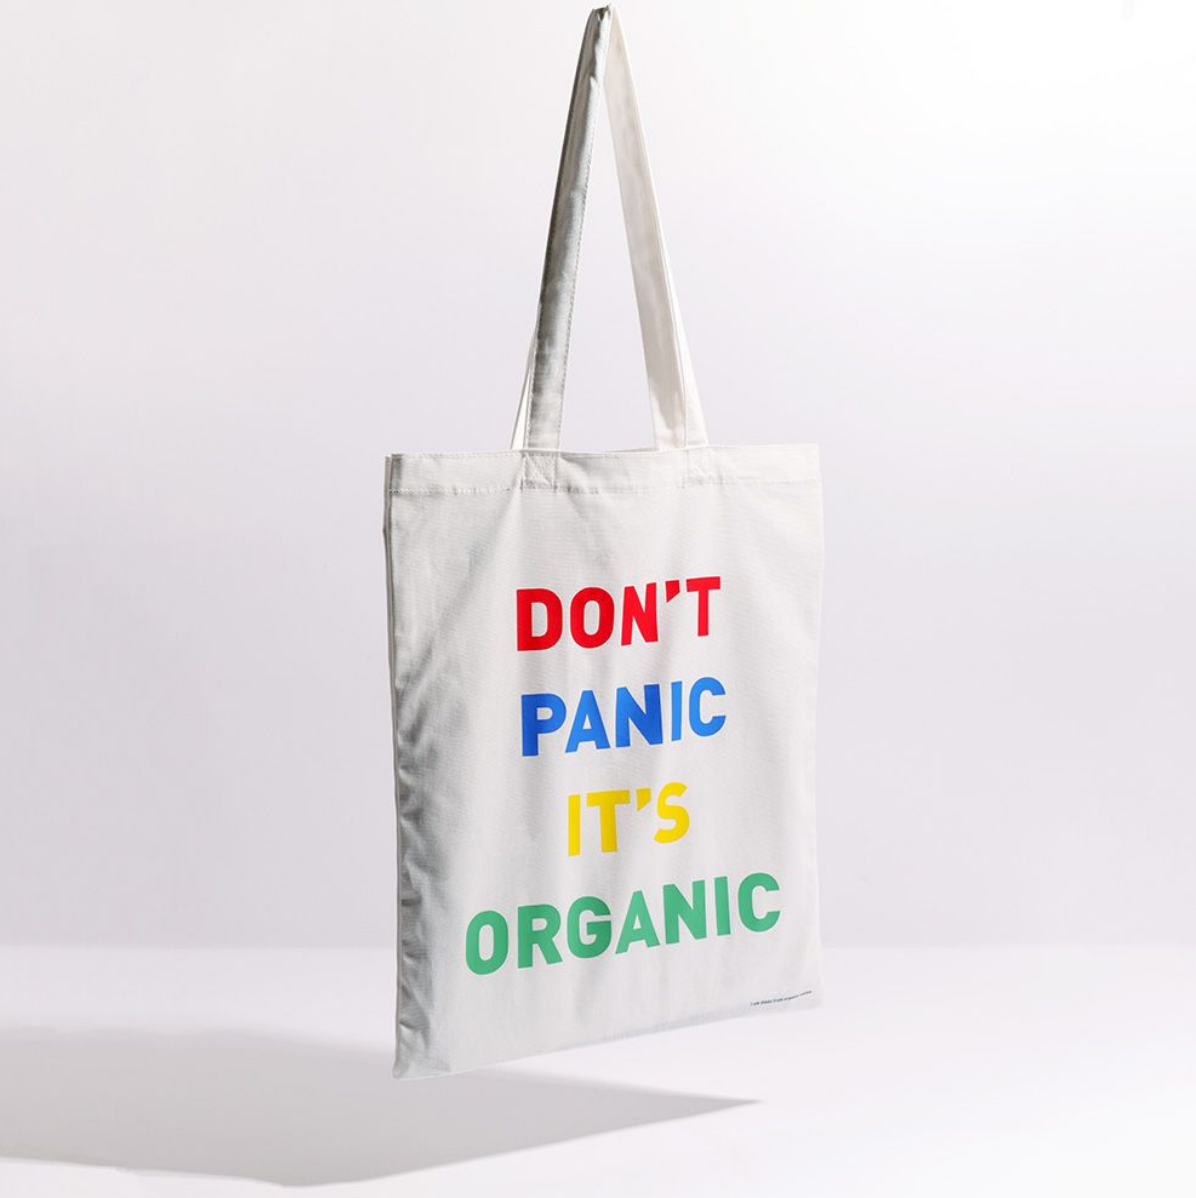 Organic cotton shopper bag by Paperchase